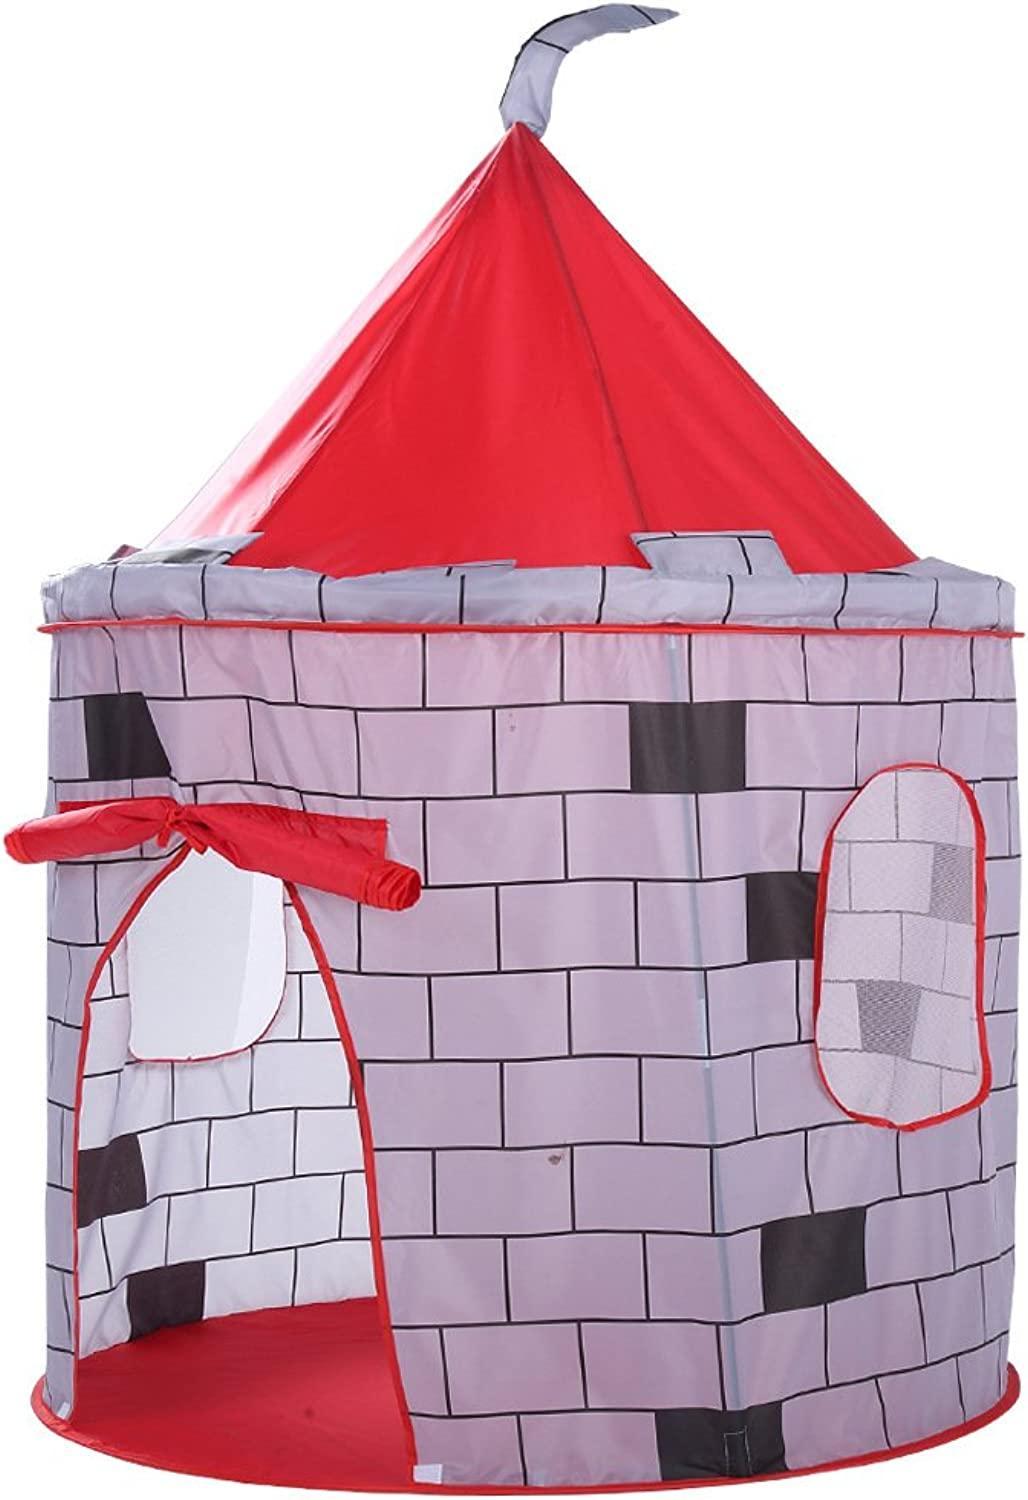 Red City Wall Castle Play Tent,City Wall Design Insect Screen-Foldable for Indoor & Outdoor Use